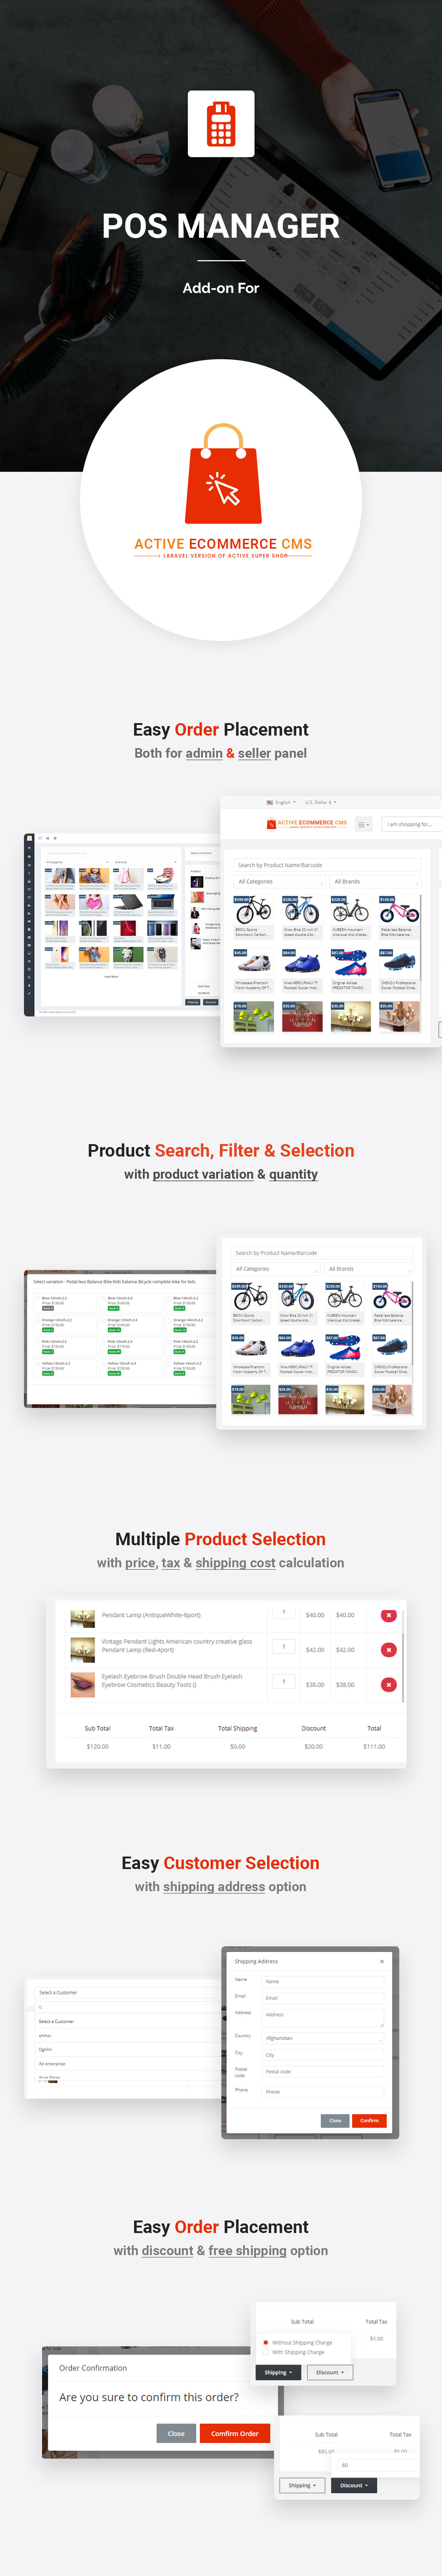 Active eCommerce POS Manager Add-on - 1